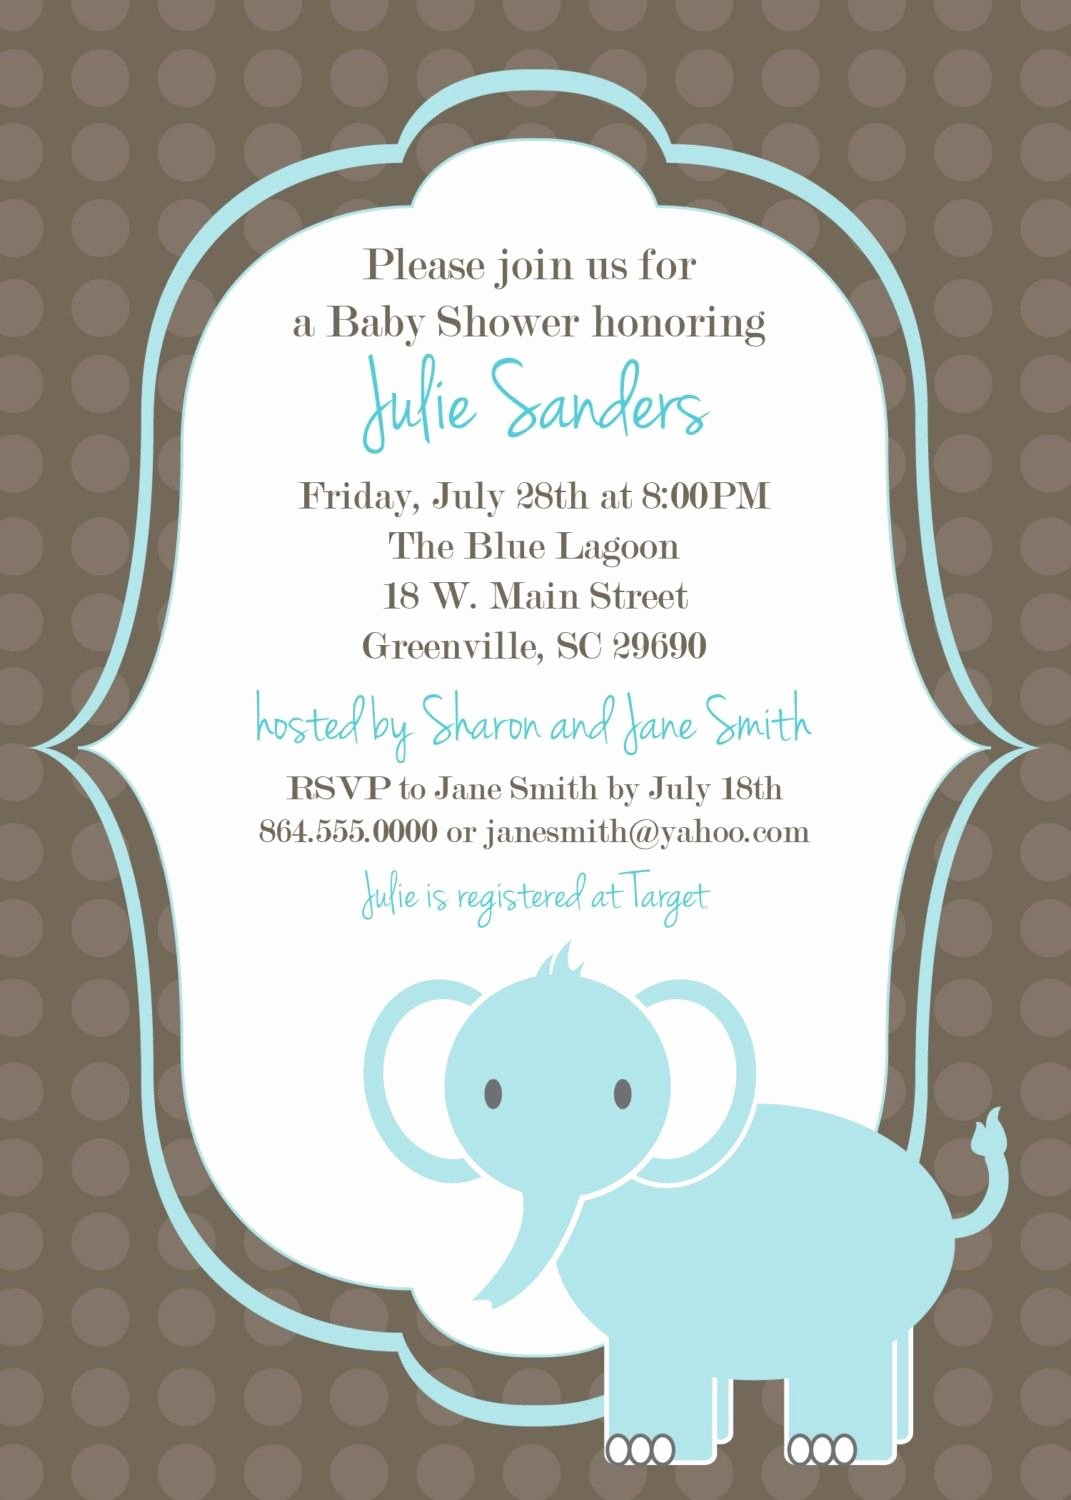 Template for Baby Shower Invitation Inspirational Download Free Template Got the Free Baby Shower